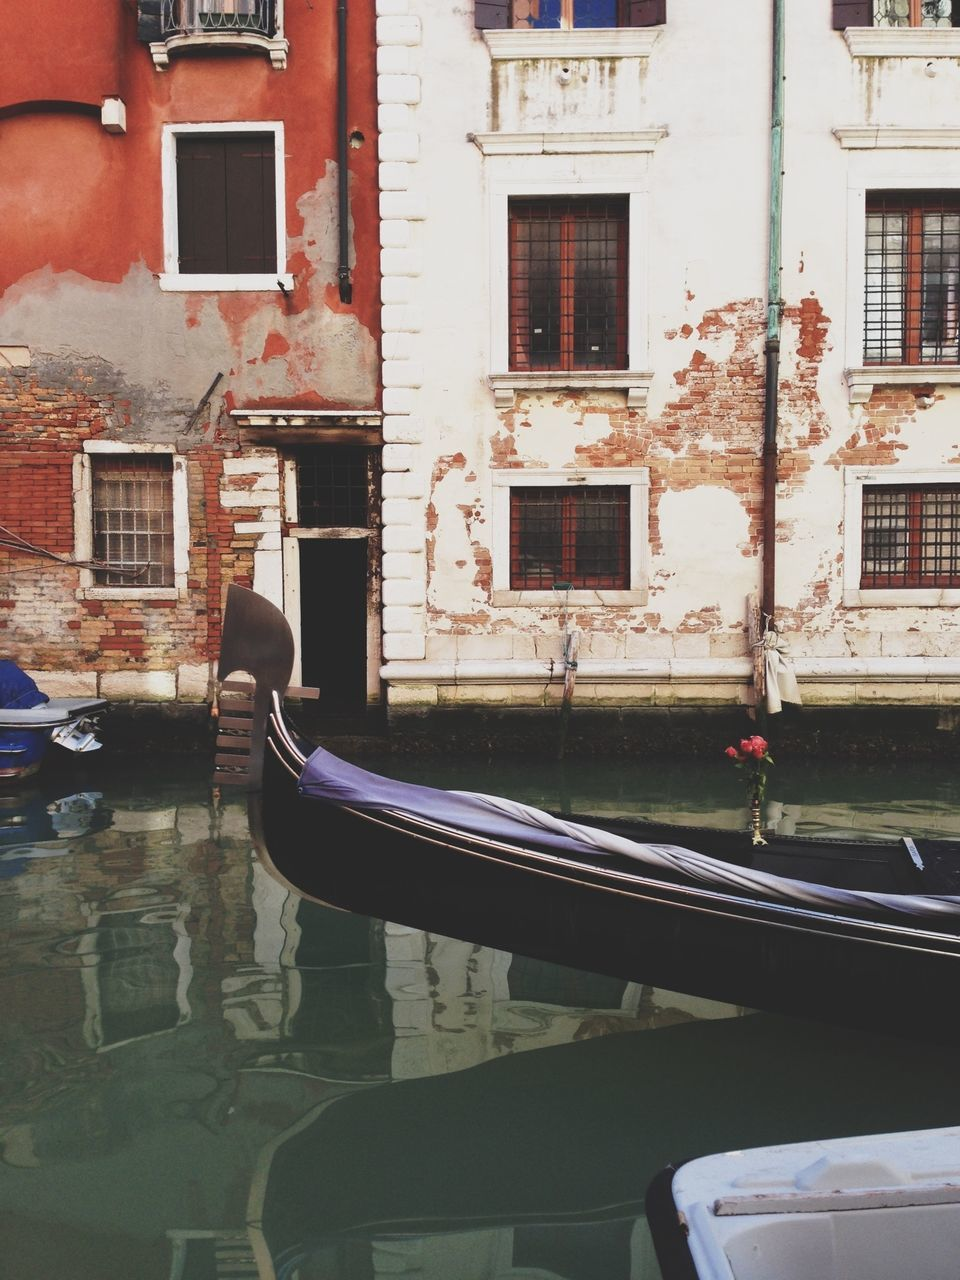 Cropped image of gondola in canal